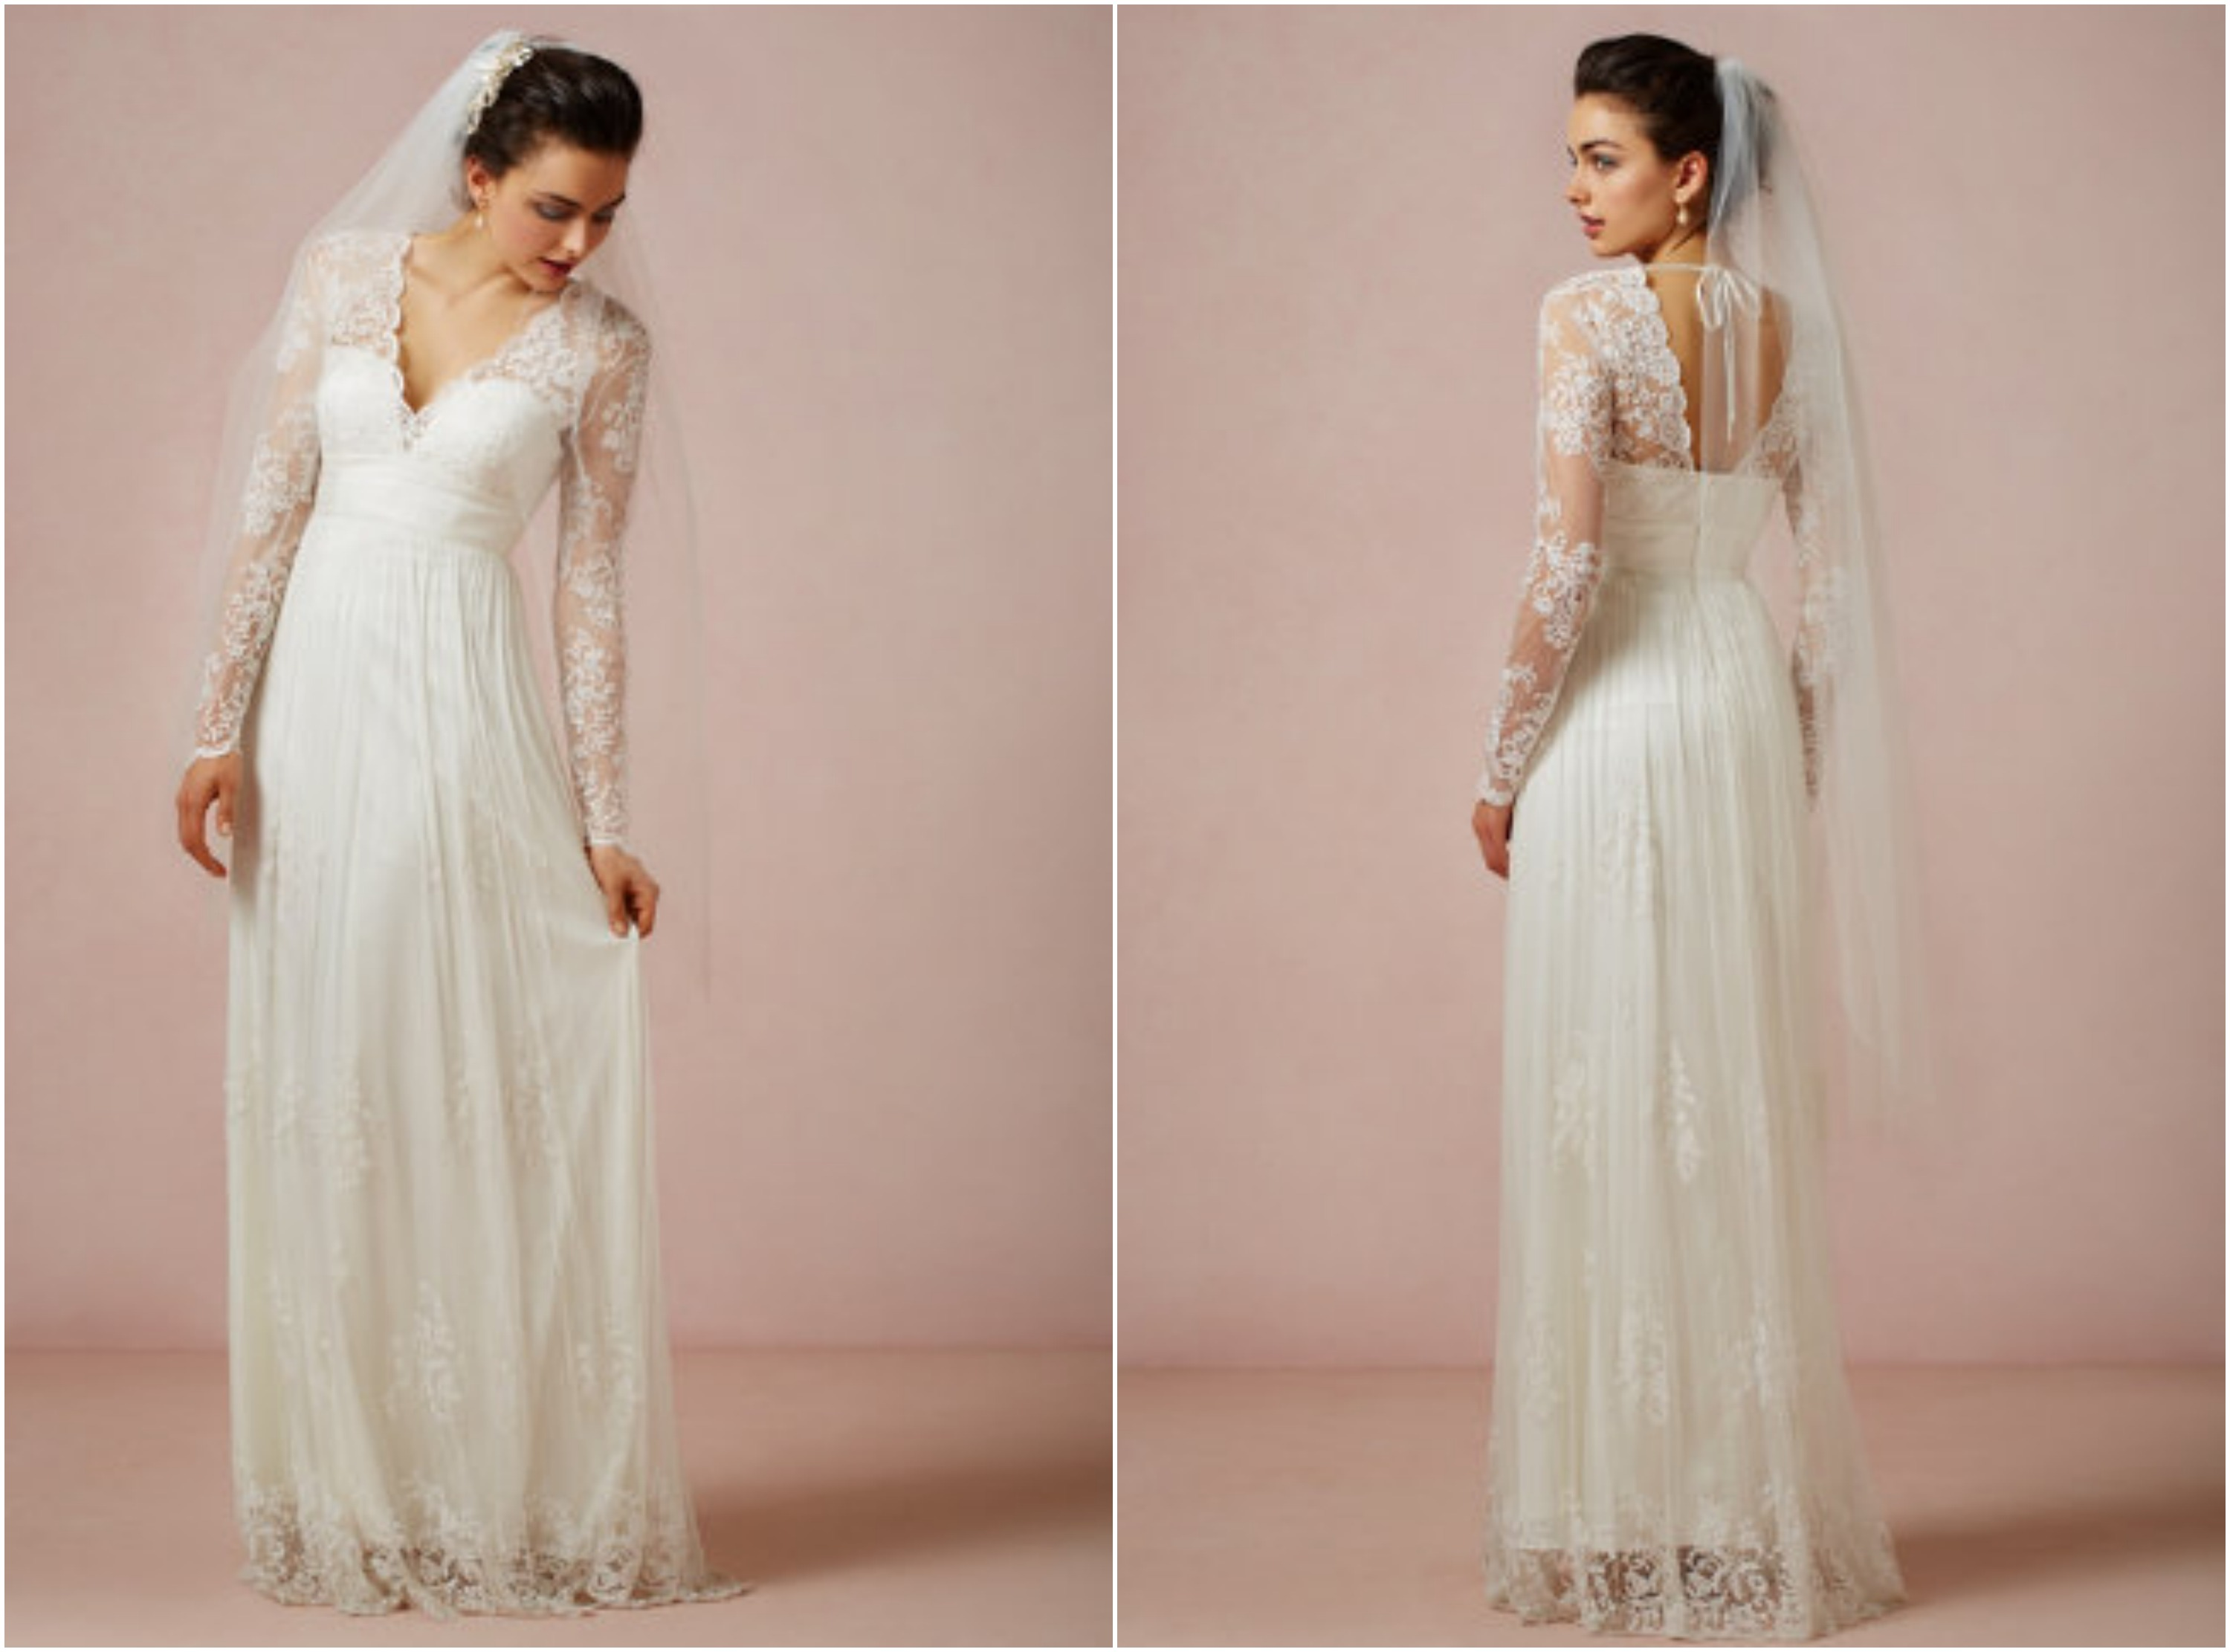 rustic wedding dresses with sleeves lace country wedding dresses Rustic Wedding Dresses With Sleeves 83